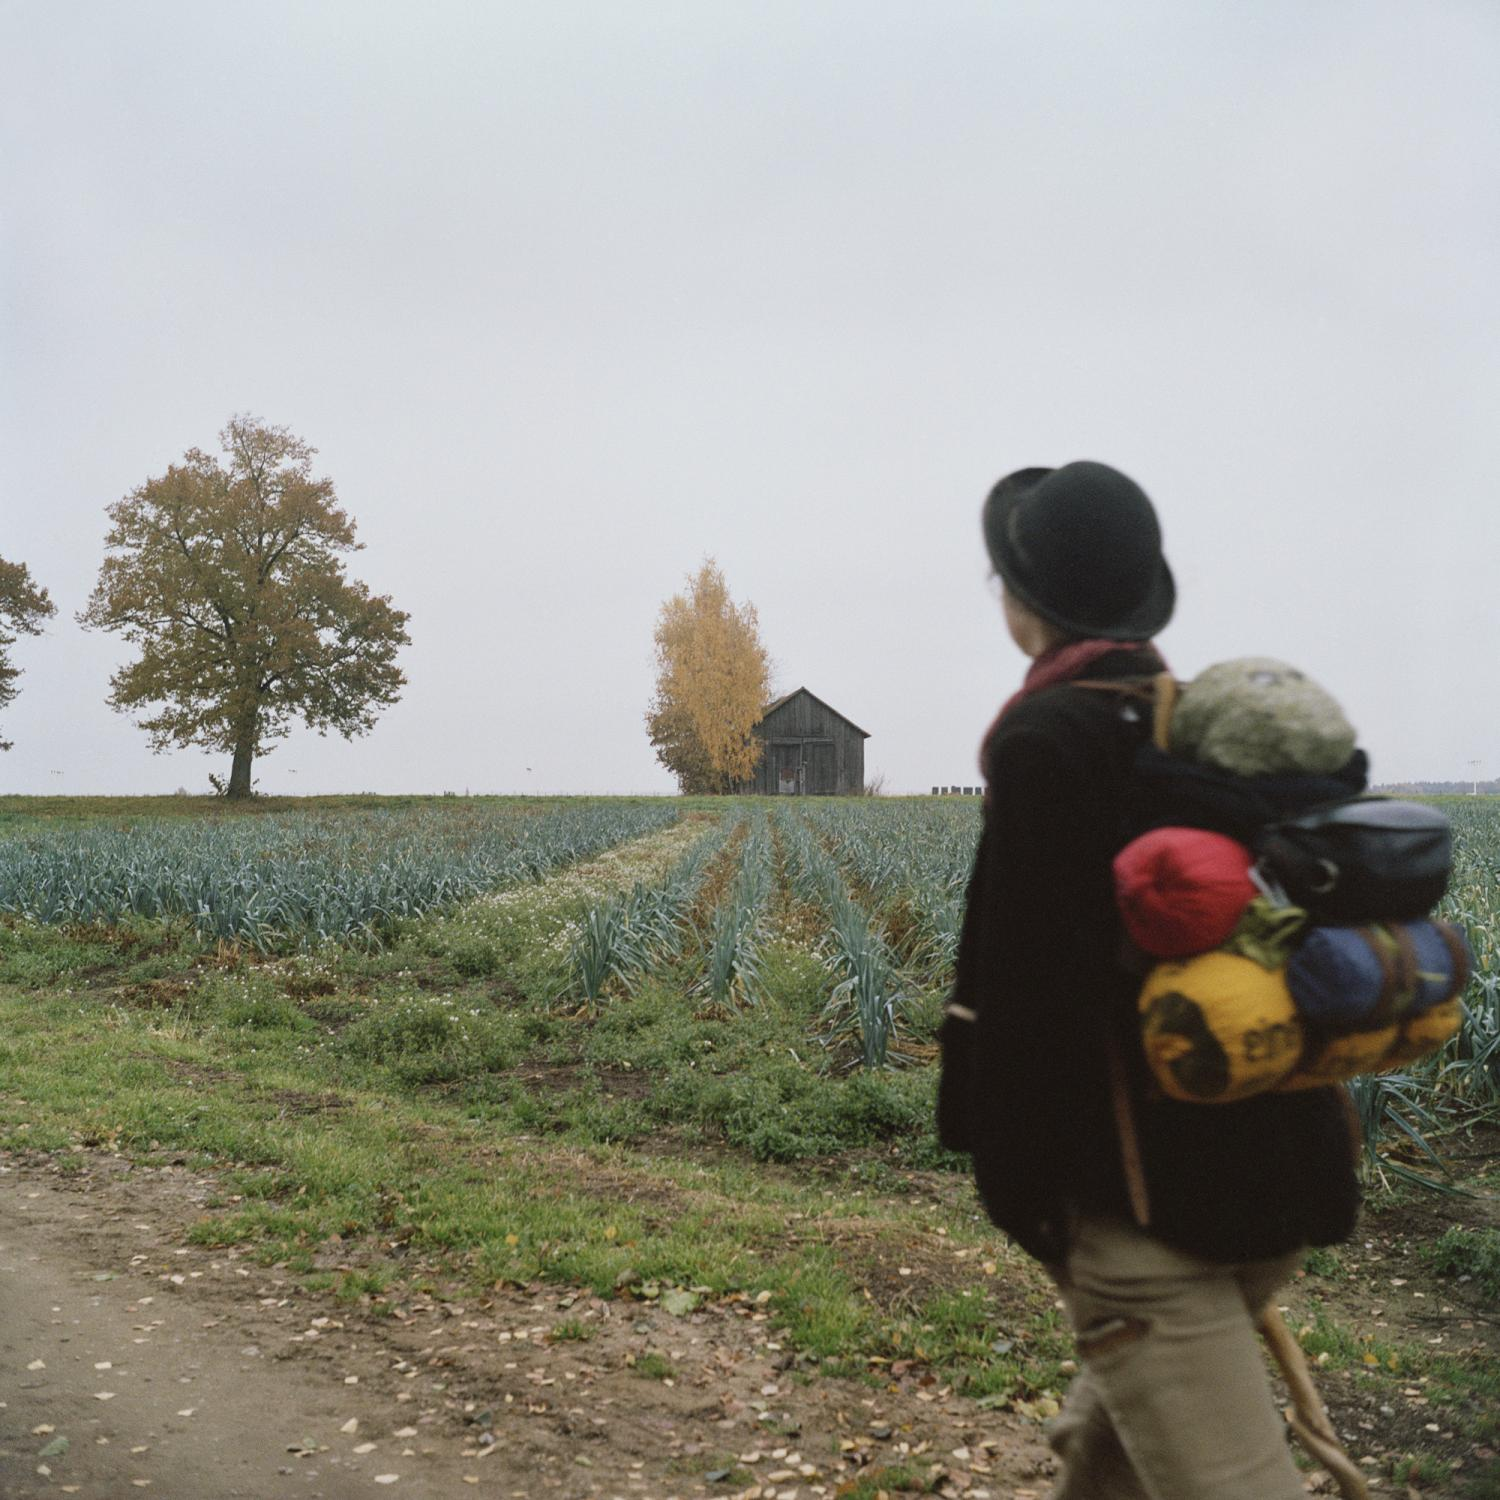 Lisa, a ceramist, walks in the outskirts of Nuernberg, as she follows the group accompanying Gudrun on her departure, ahead of her trip towards Saint Malò in France, where she will try to get a job on a sailing boat heading South America.